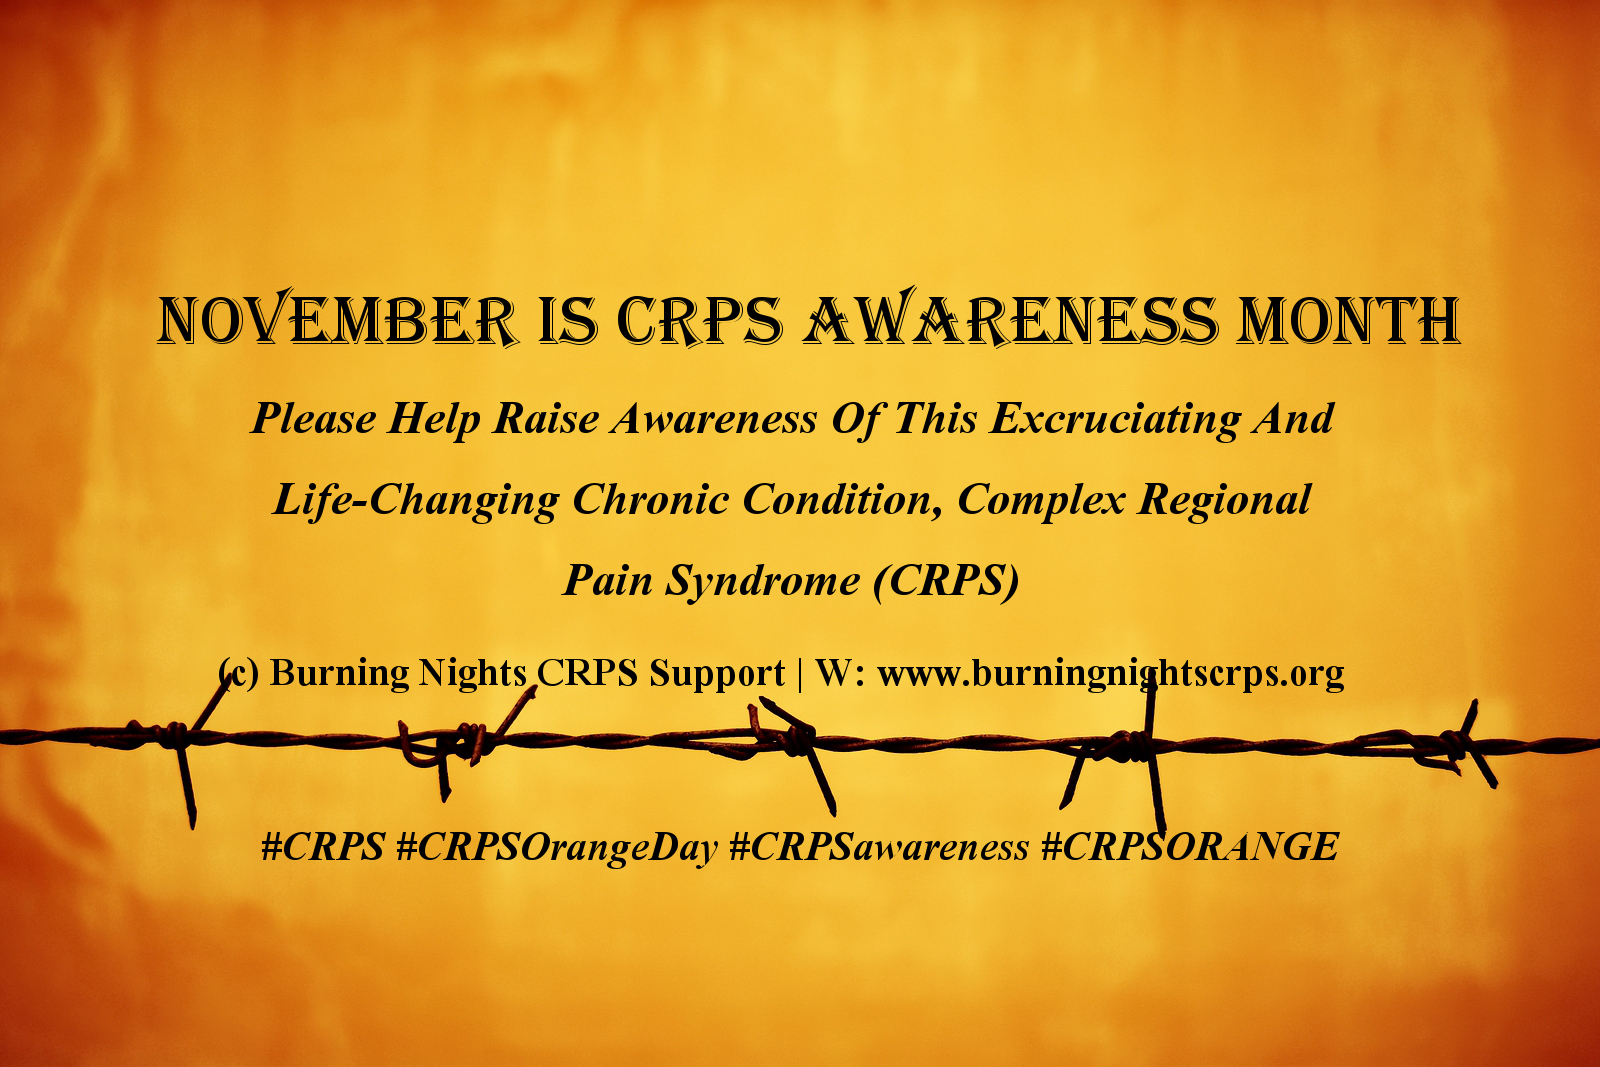 CRPS Awareness Month | Support | Burning Nights